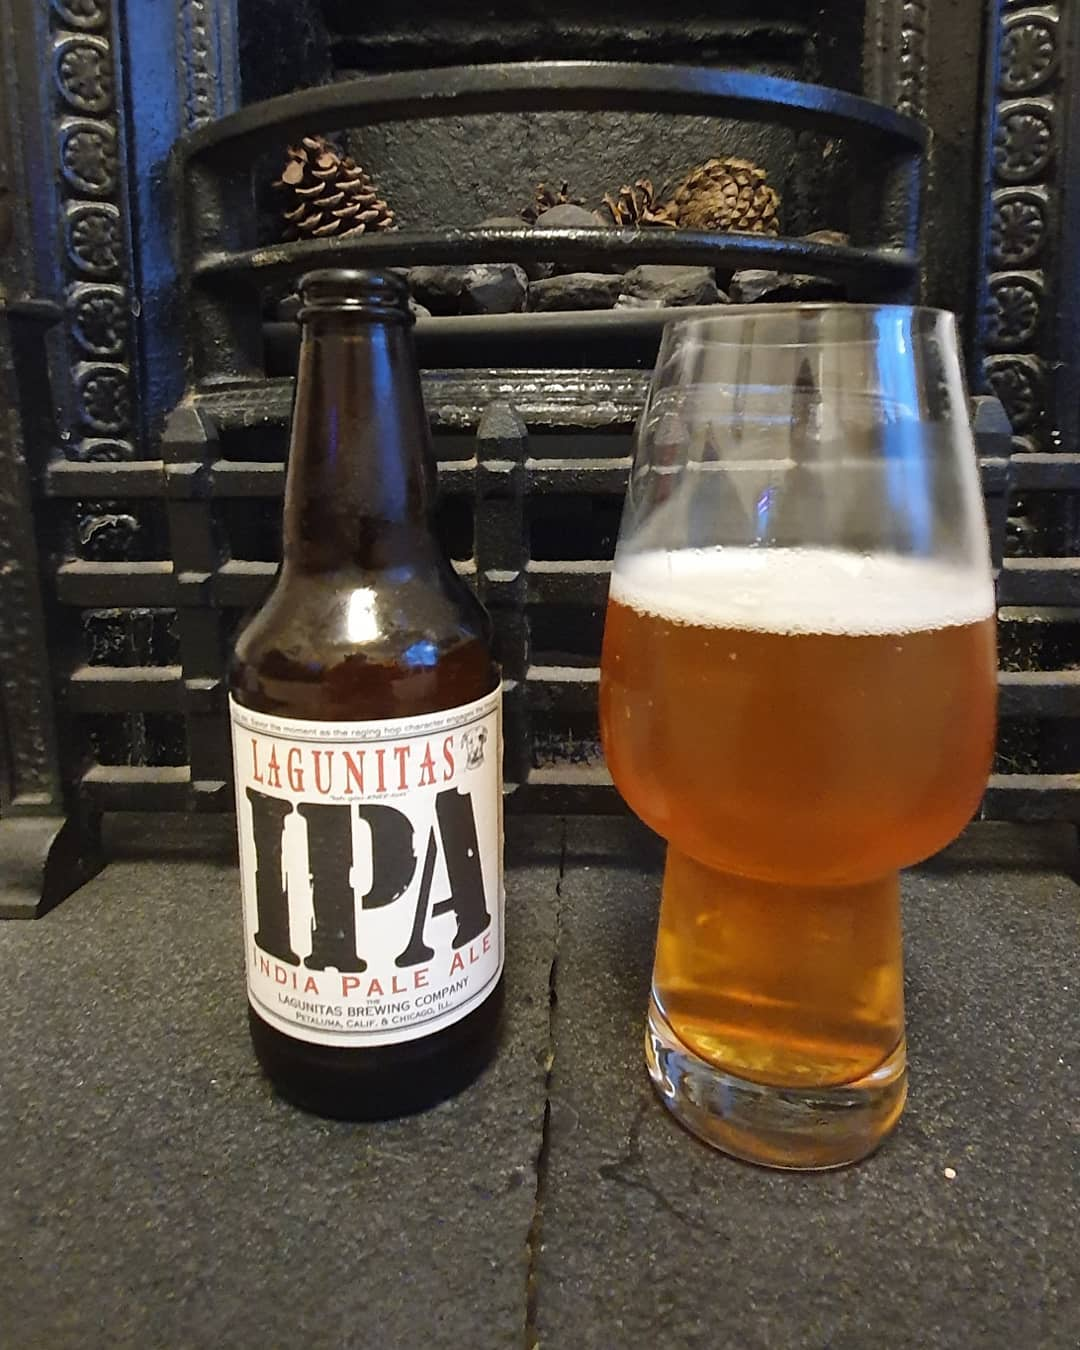 Lagunitas IPA poured into a beer glass sitting in front a fireplace